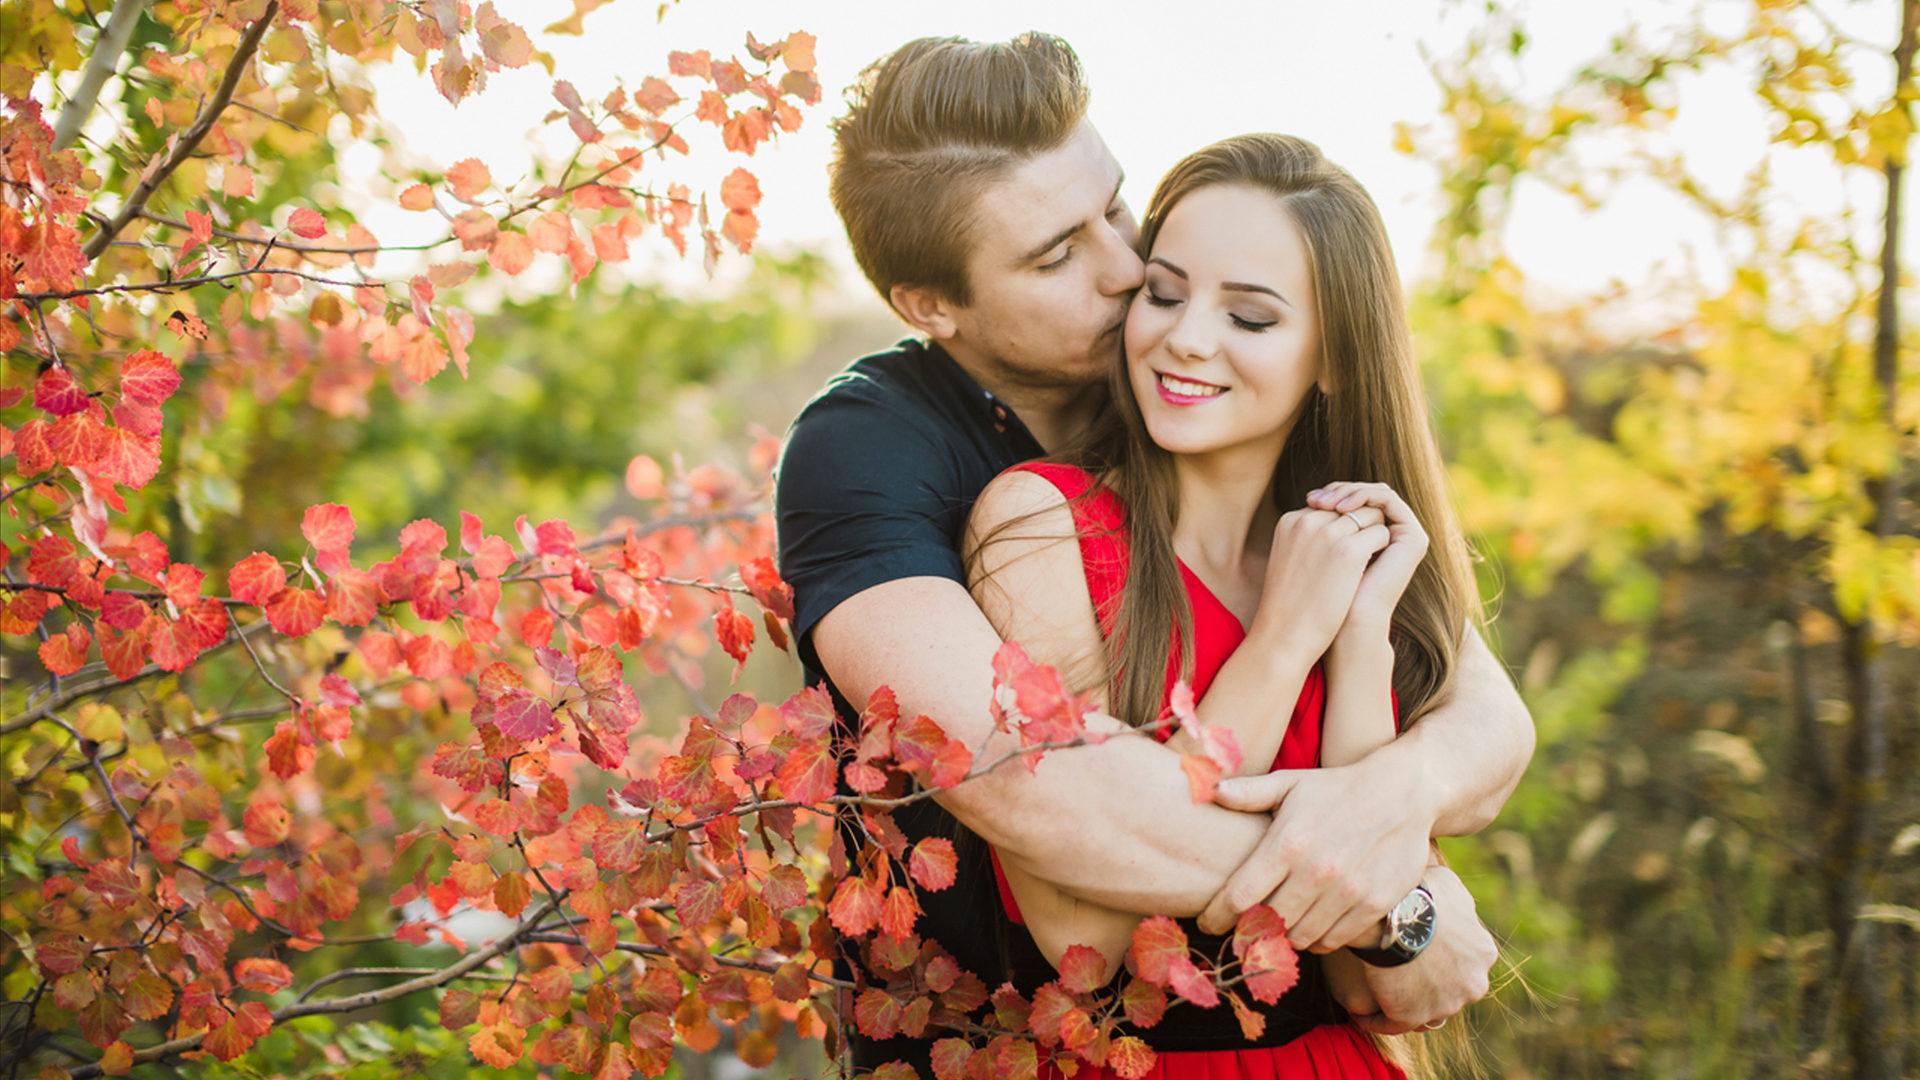 Lovely Wallpapers With Quotes In Hindi Beautiful Loving Couple Romance In Nature Autumn Leaves Hd